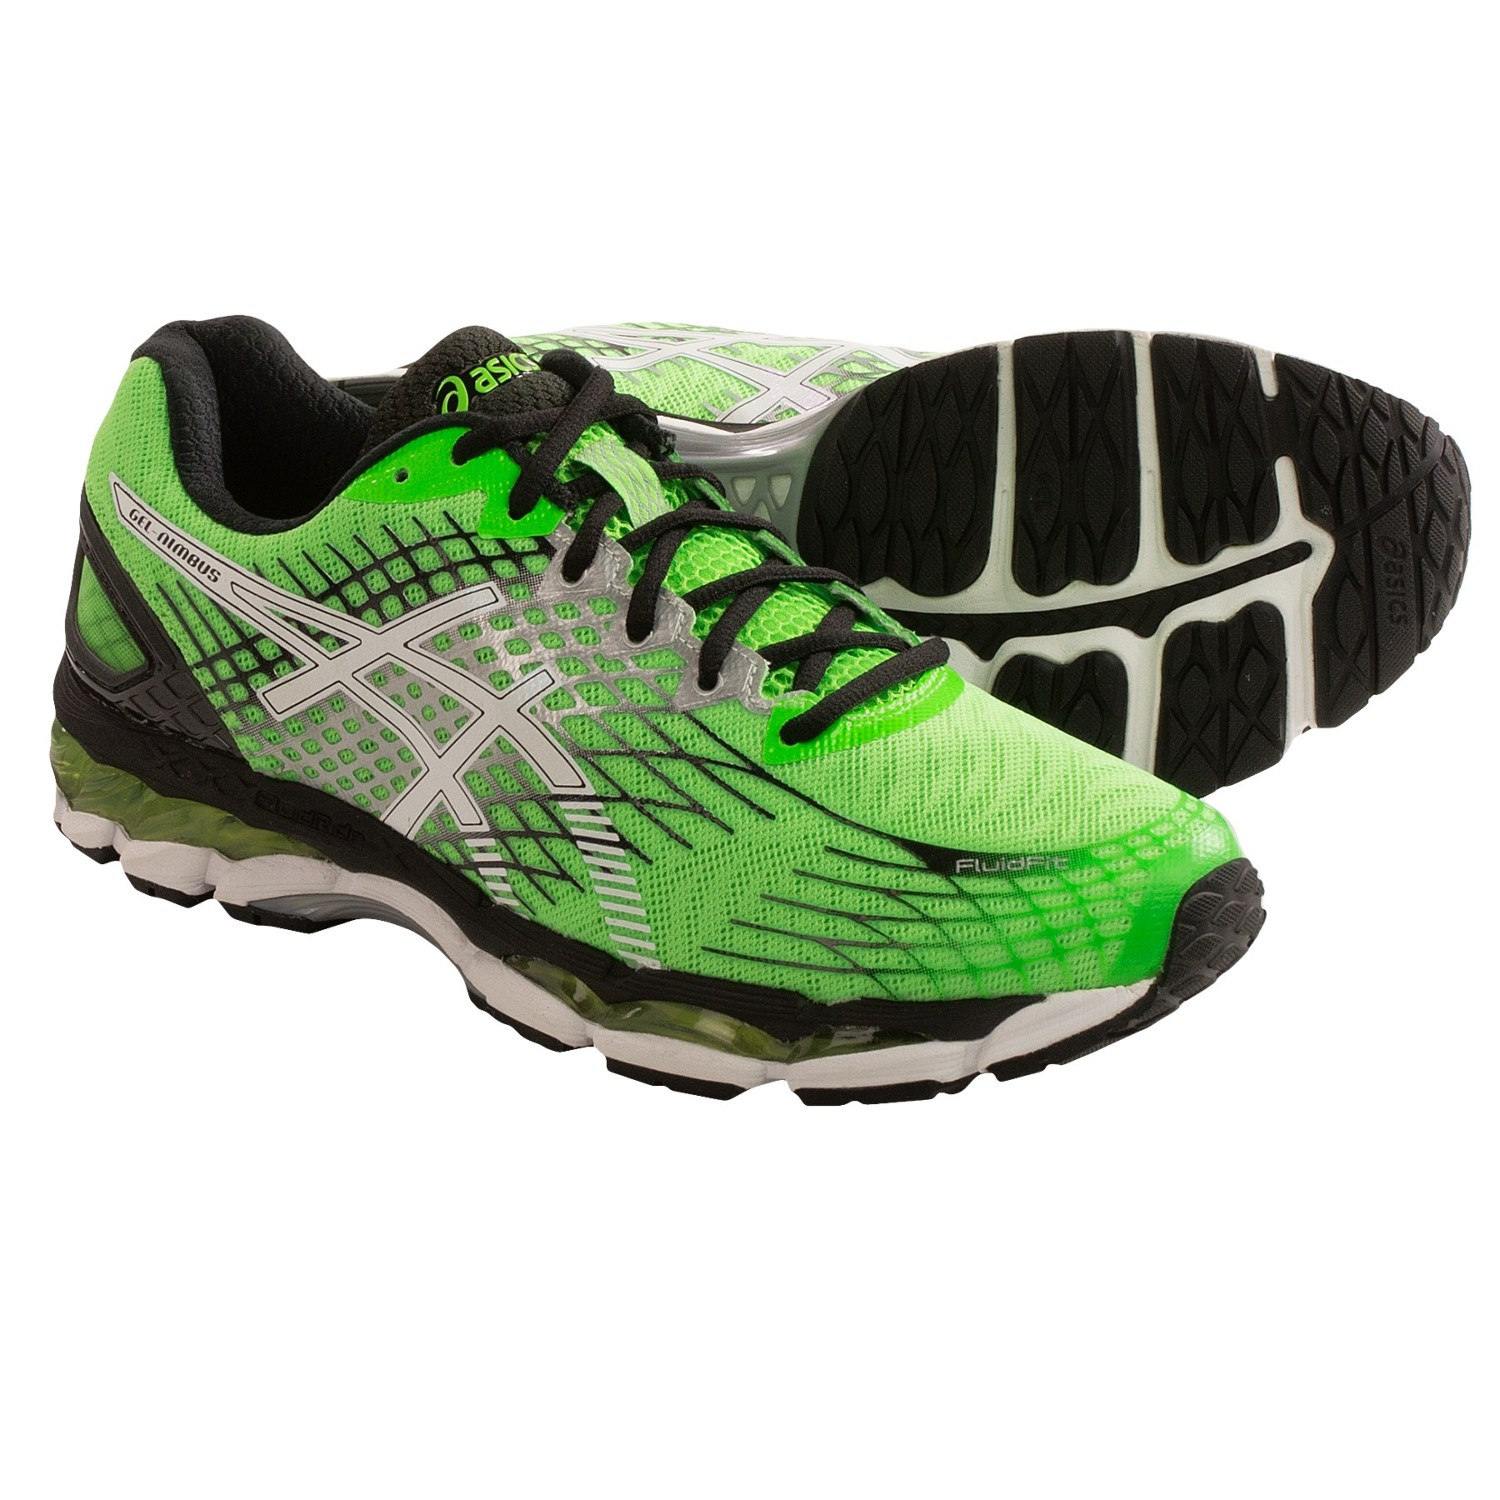 asics gel nimbus 17 running shoes for men save 26. Black Bedroom Furniture Sets. Home Design Ideas